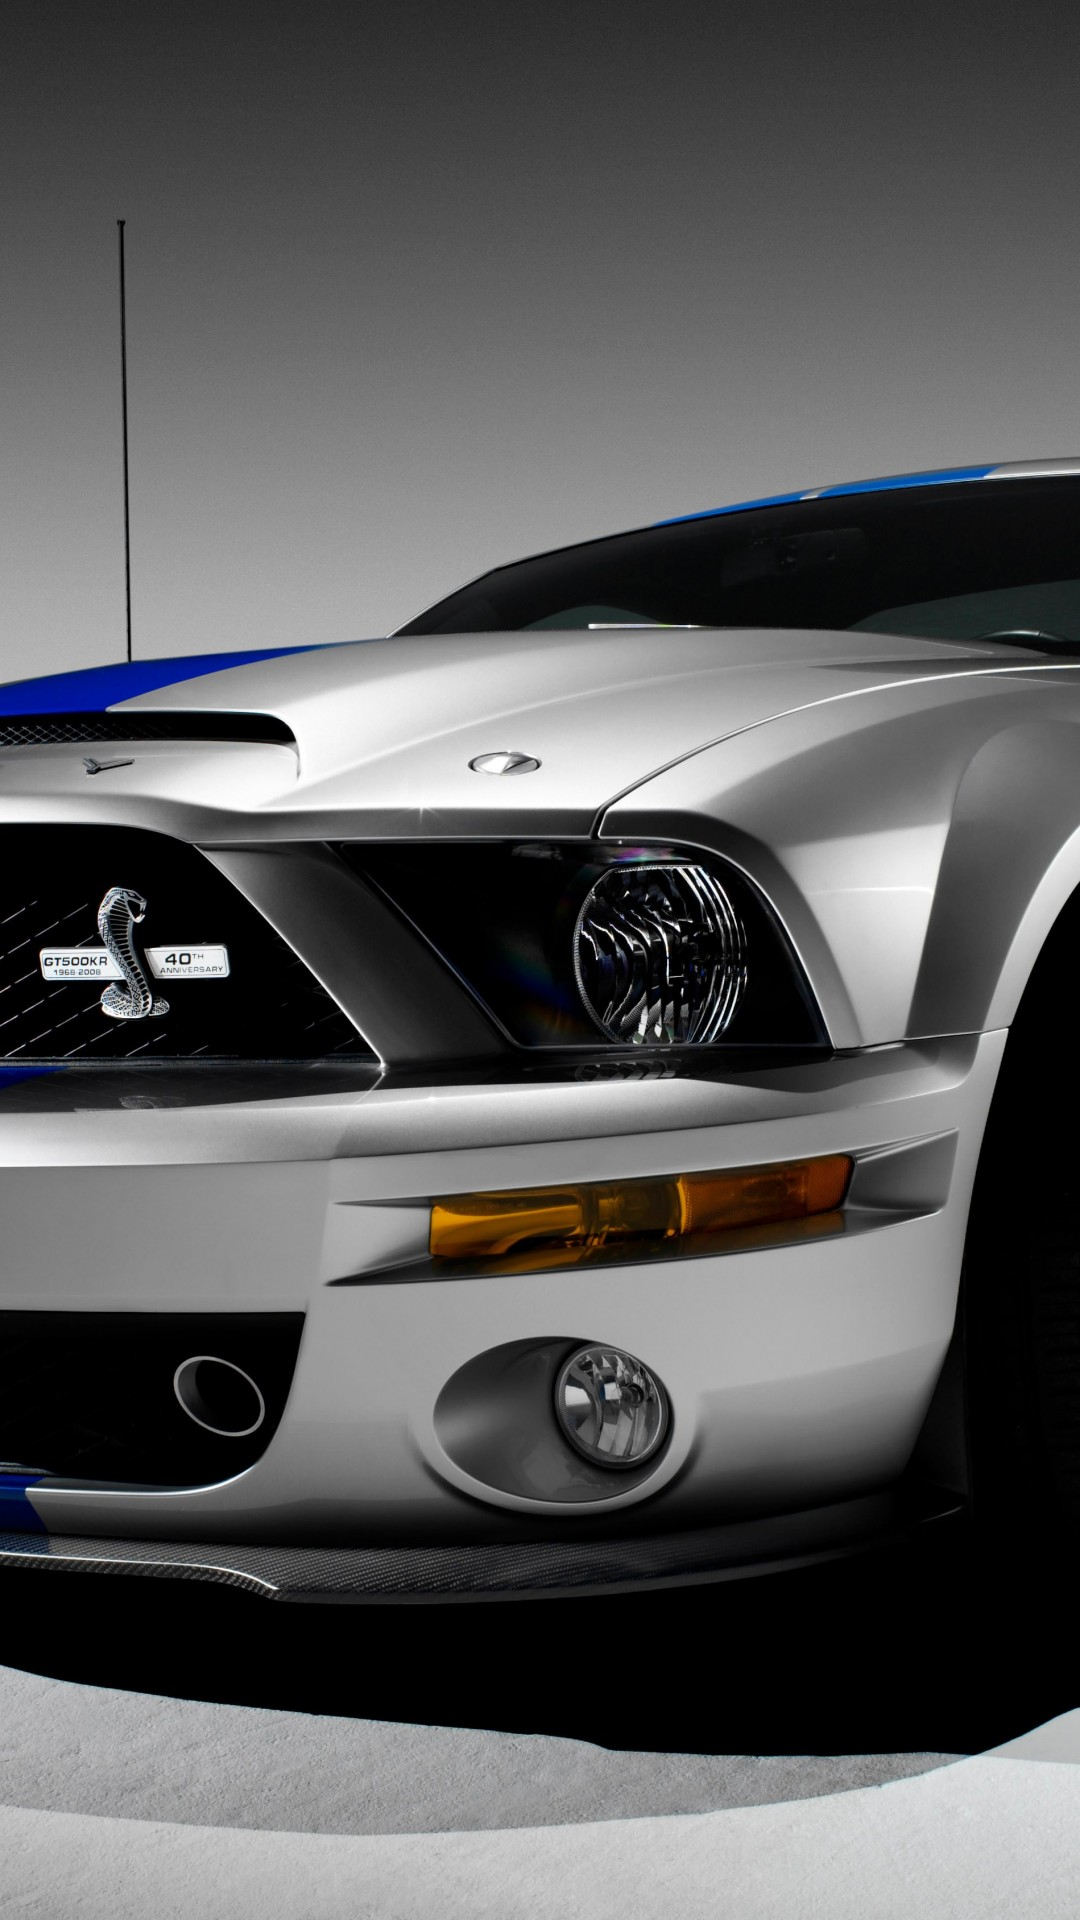 Shelby Mustang GT500KR Wallpaper for SAMSUNG Galaxy Note 3